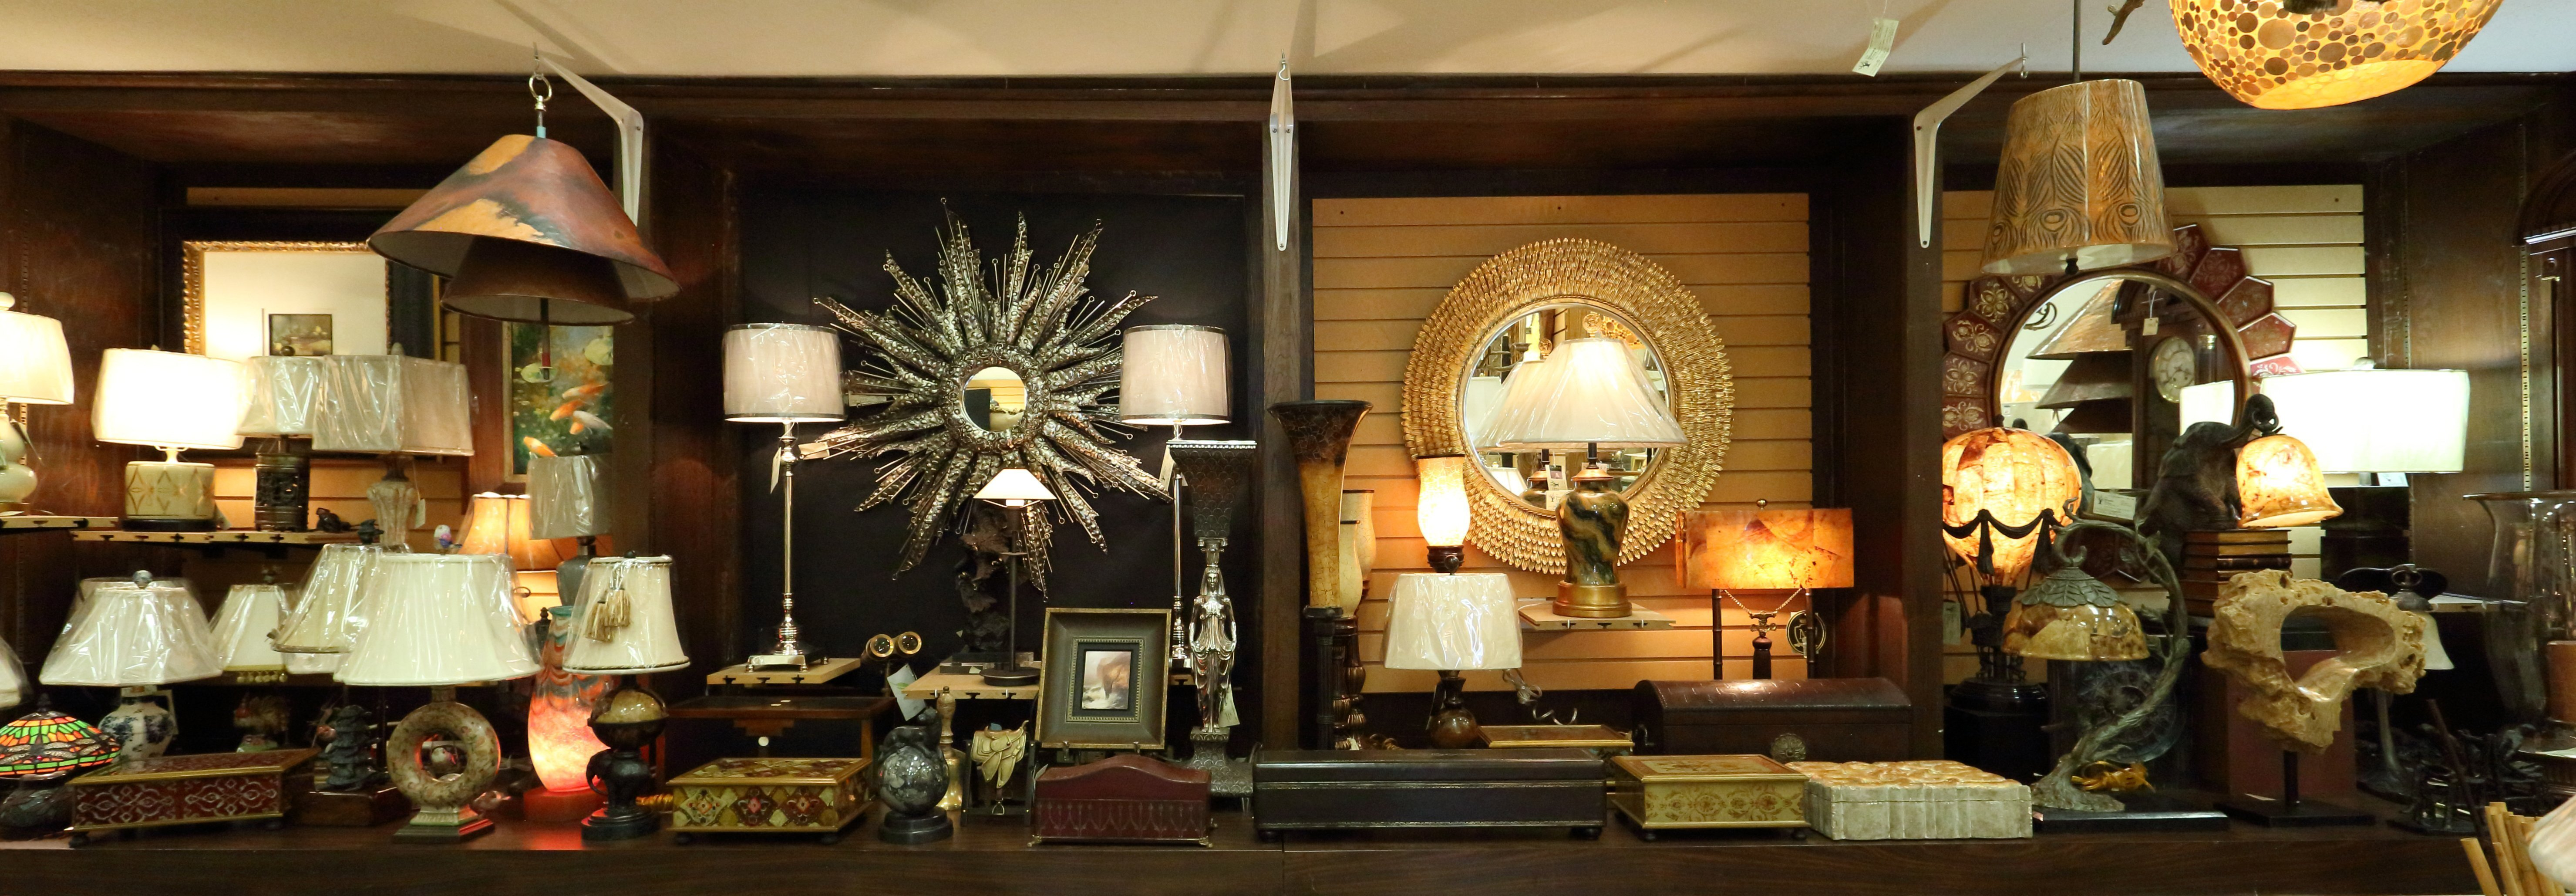 home decor store in houston tx the shade tree - Home Decor Houston